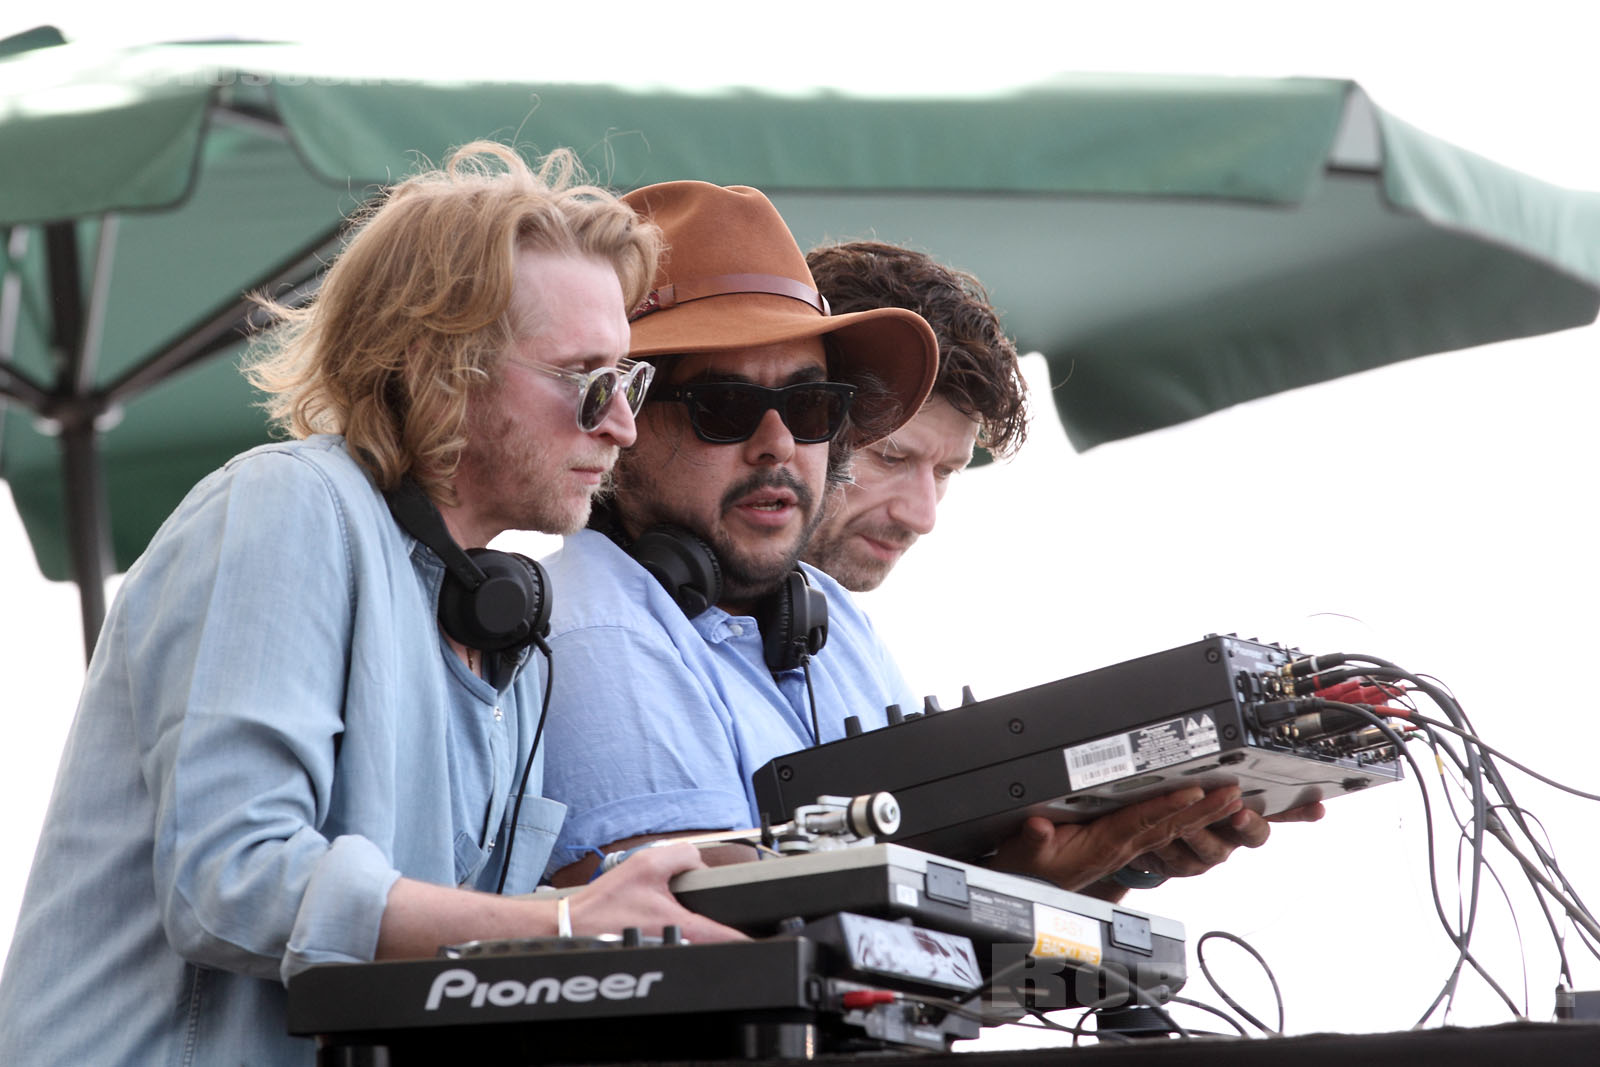 PACHANGA BOYS - 2014-06-07 - PARIS - Parc de la Villette